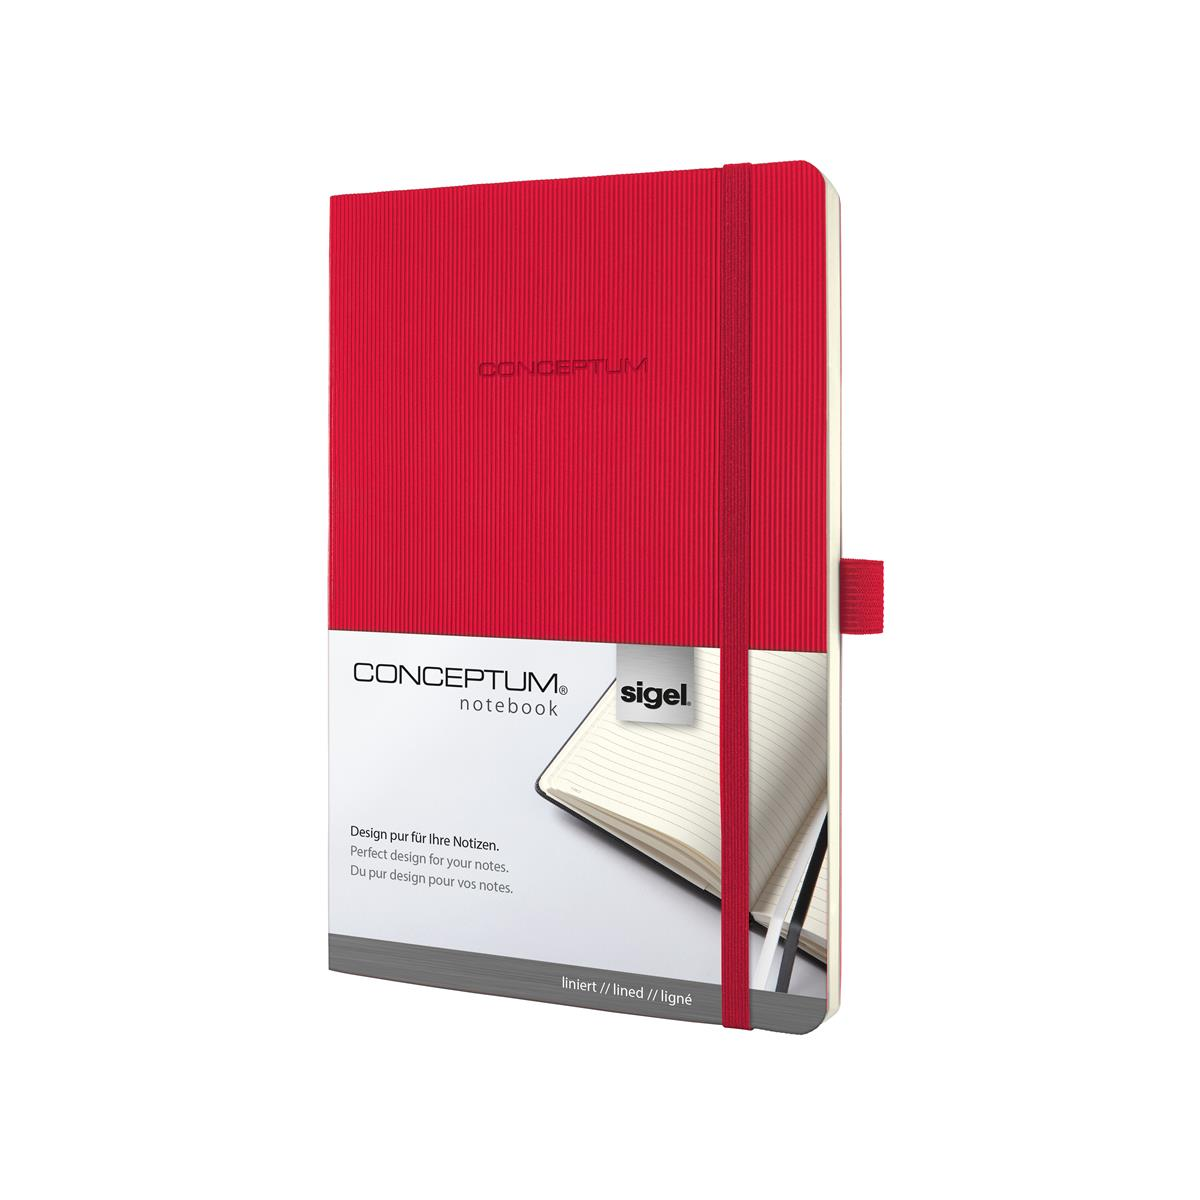 Sigel Conceptum Notebook Leather Look Soft Cover 80gsm  194pp Ruled A5 Red Ref CO325